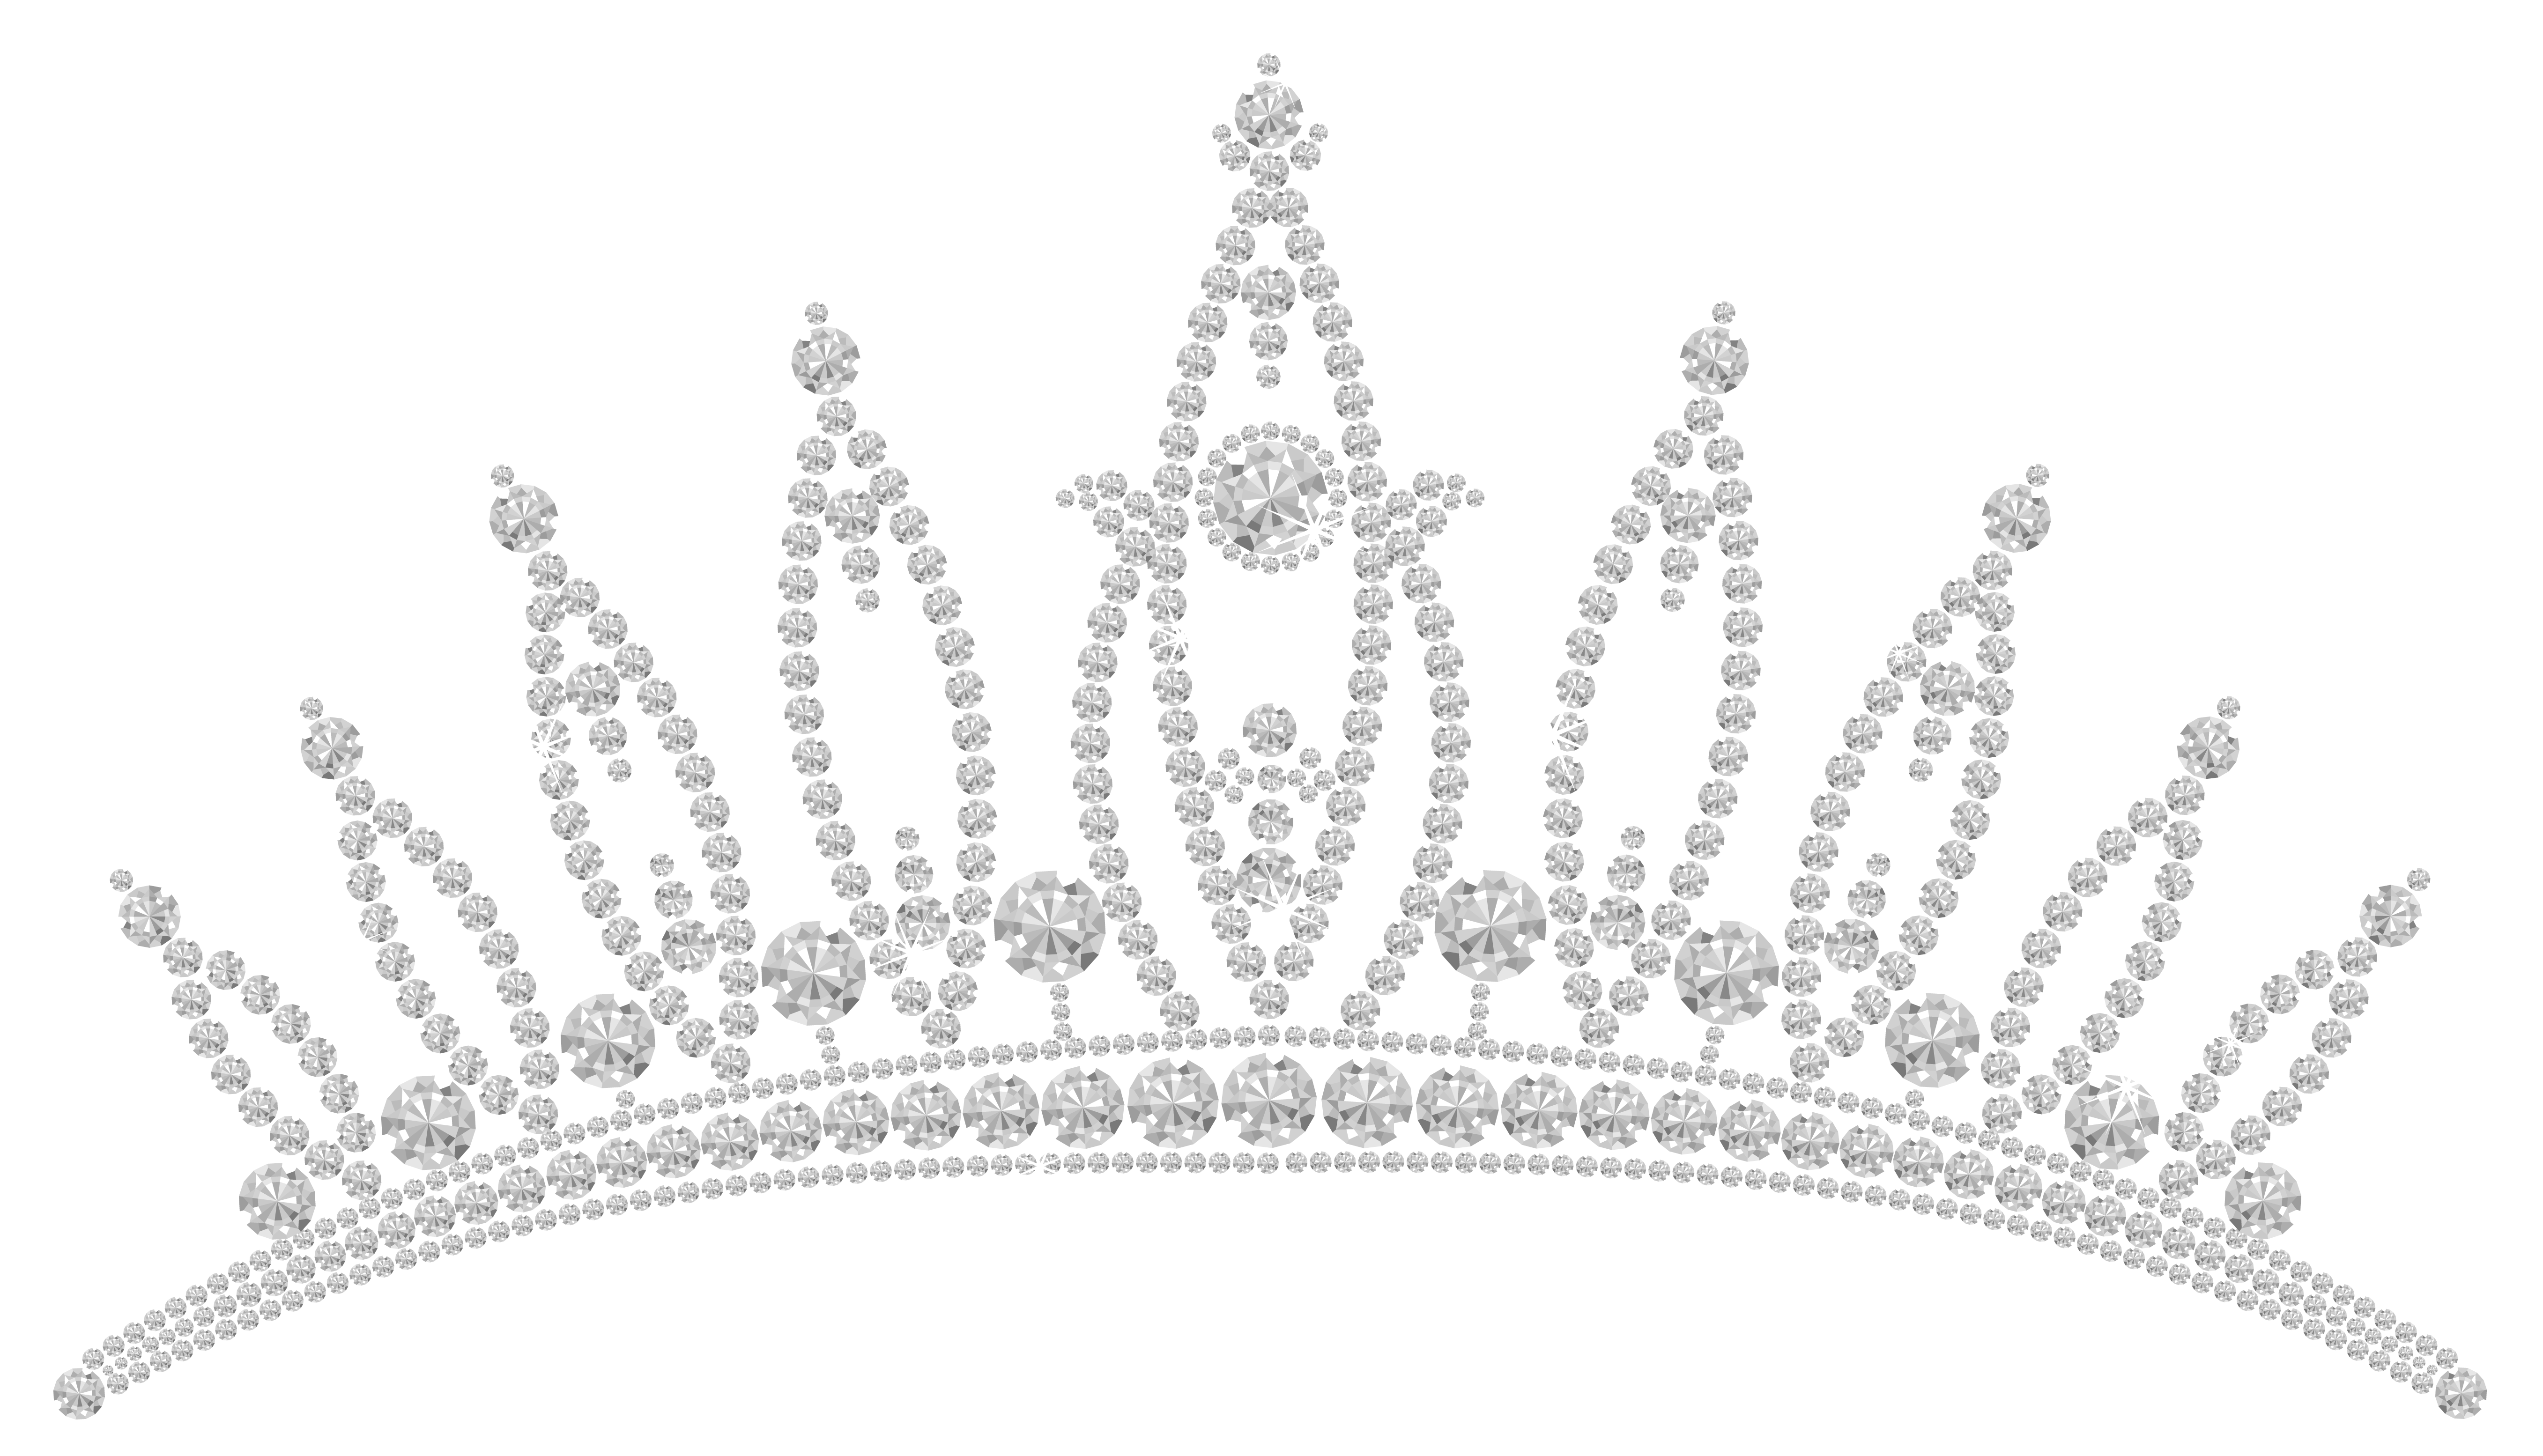 Tiara clipart png. Diamond picture gallery yopriceville